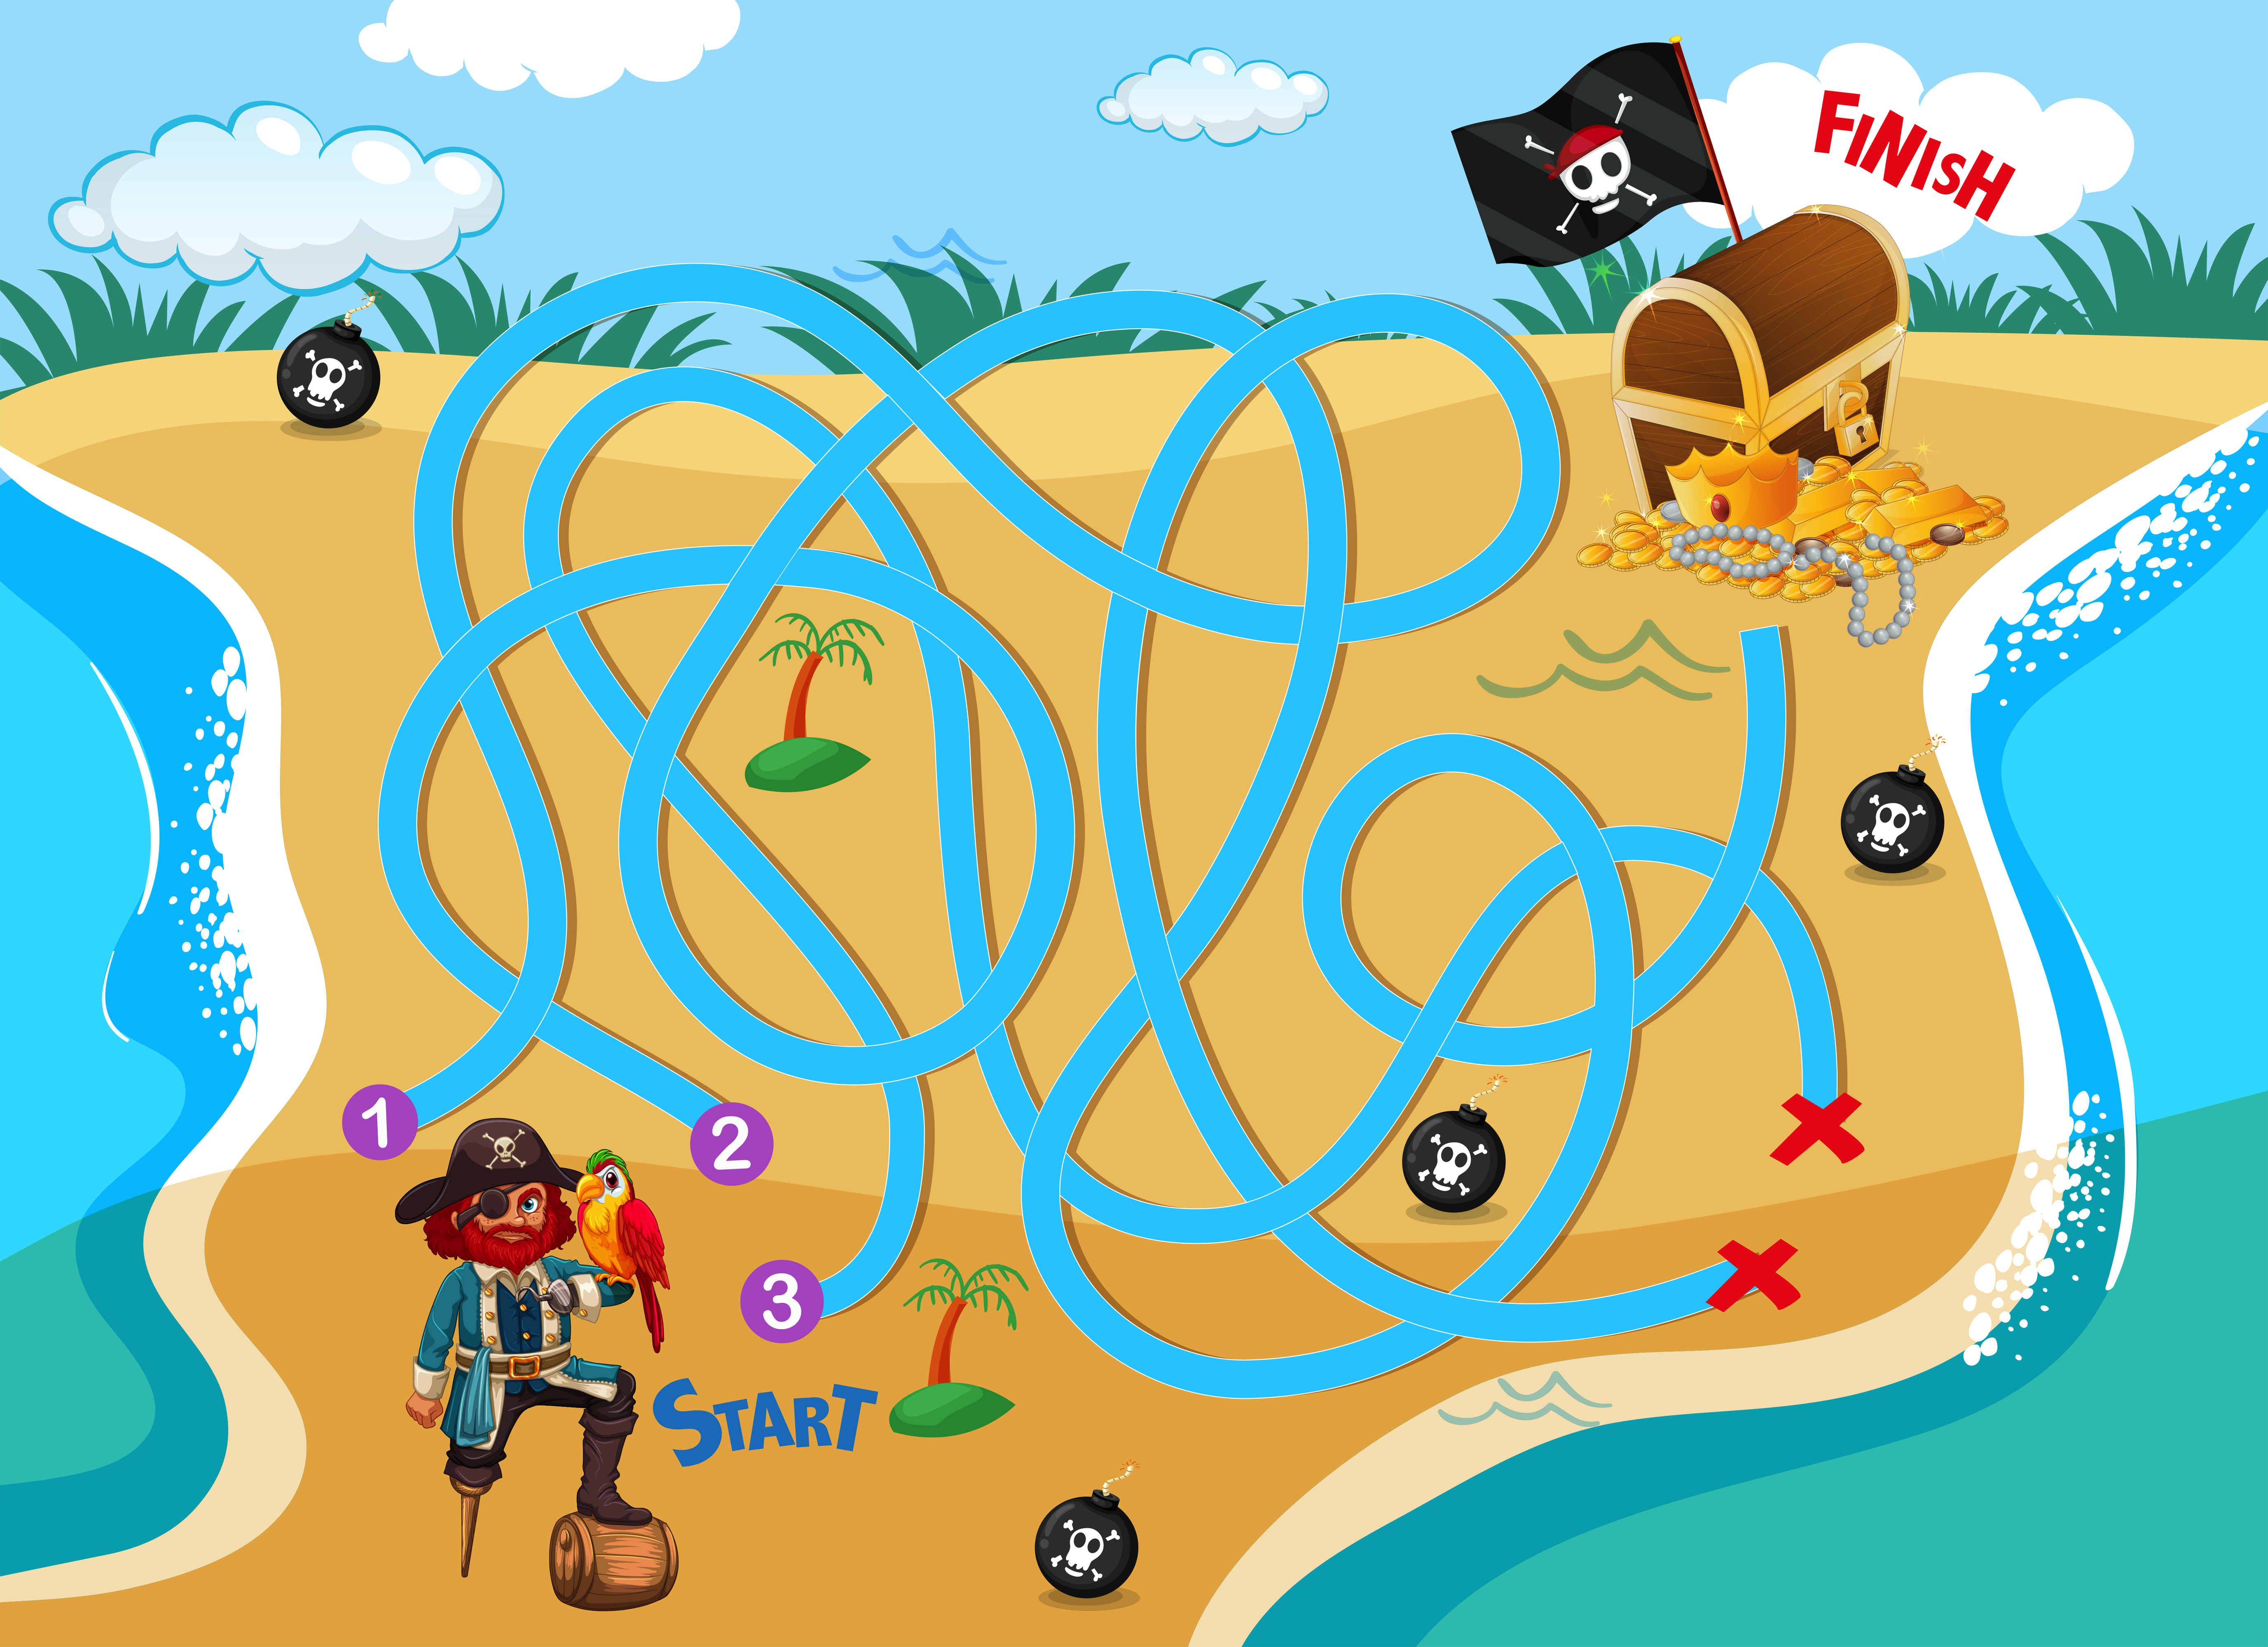 Pirate Beach Maze Puzzle Game Download Free Vector Art Stock